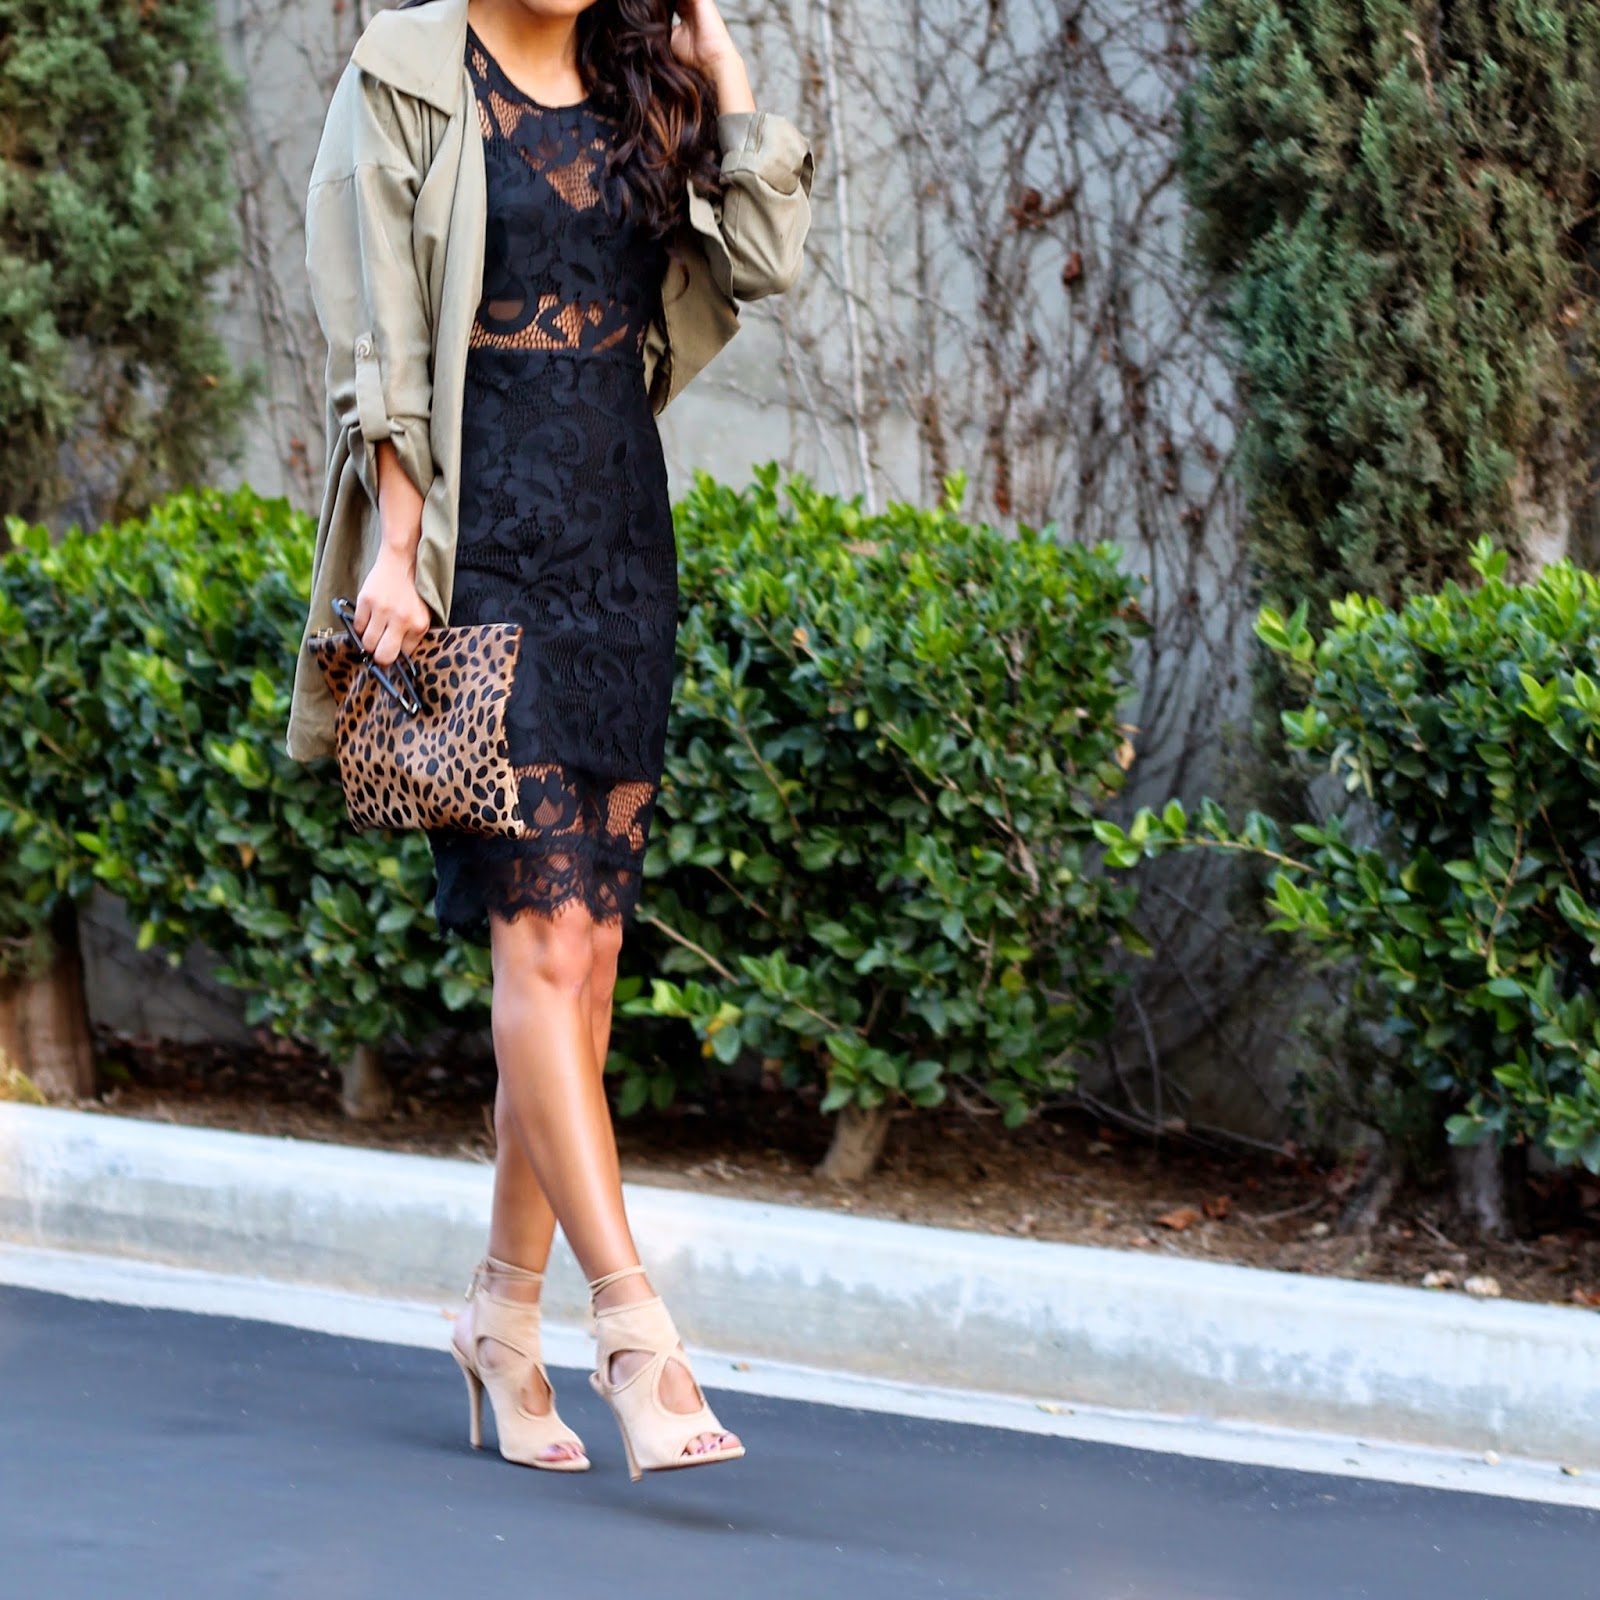 holiday part style, clare vivier clutch, aquazzura heels, lace black dress, holiday style, NBD on REVOLVE, What to wear holiday party